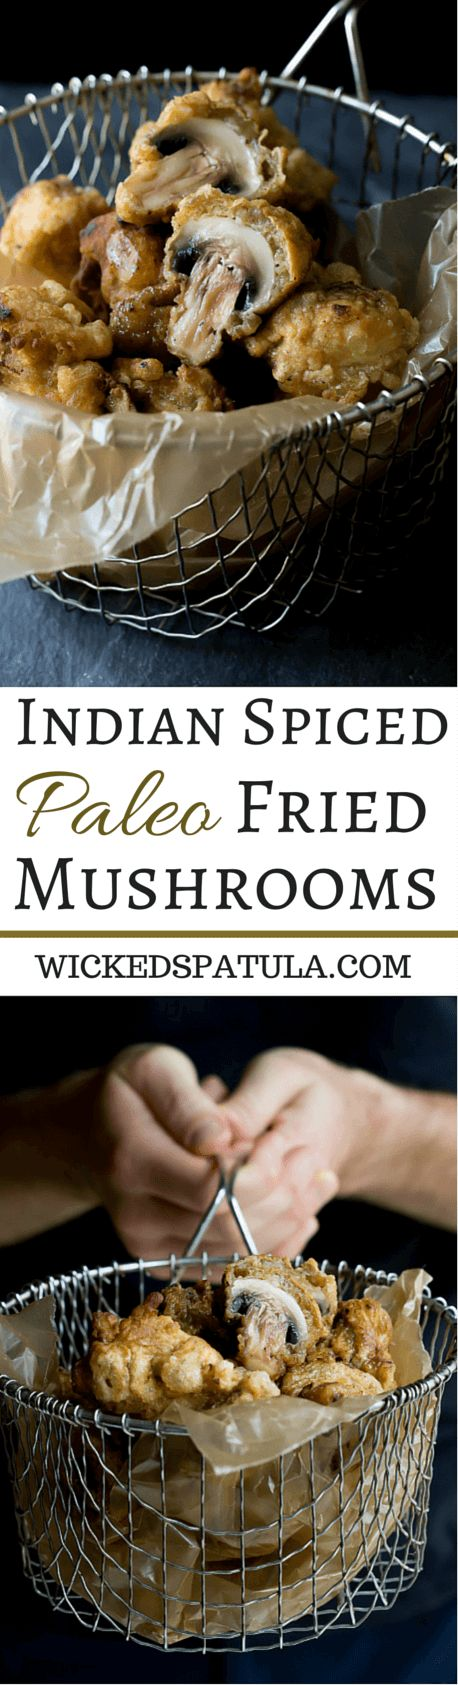 Paleo Fried Mushrooms spiced with Indian spices for a flavorful appetizer! | wickedspatula.com